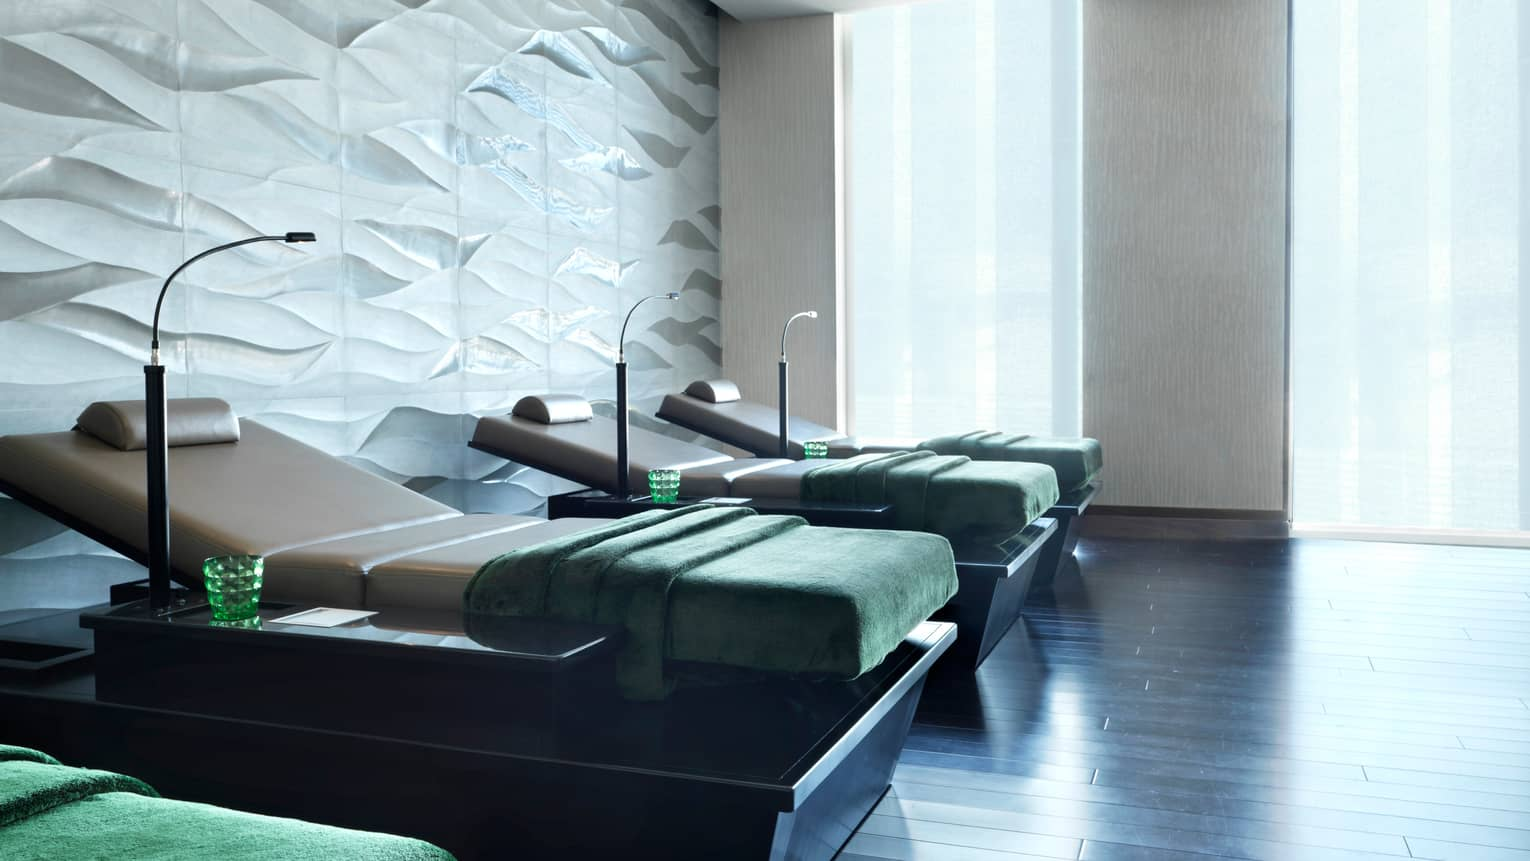 Four spa beds side-by-side with reading lamps, green blankets and glasses, in front of white wall and sunny windows